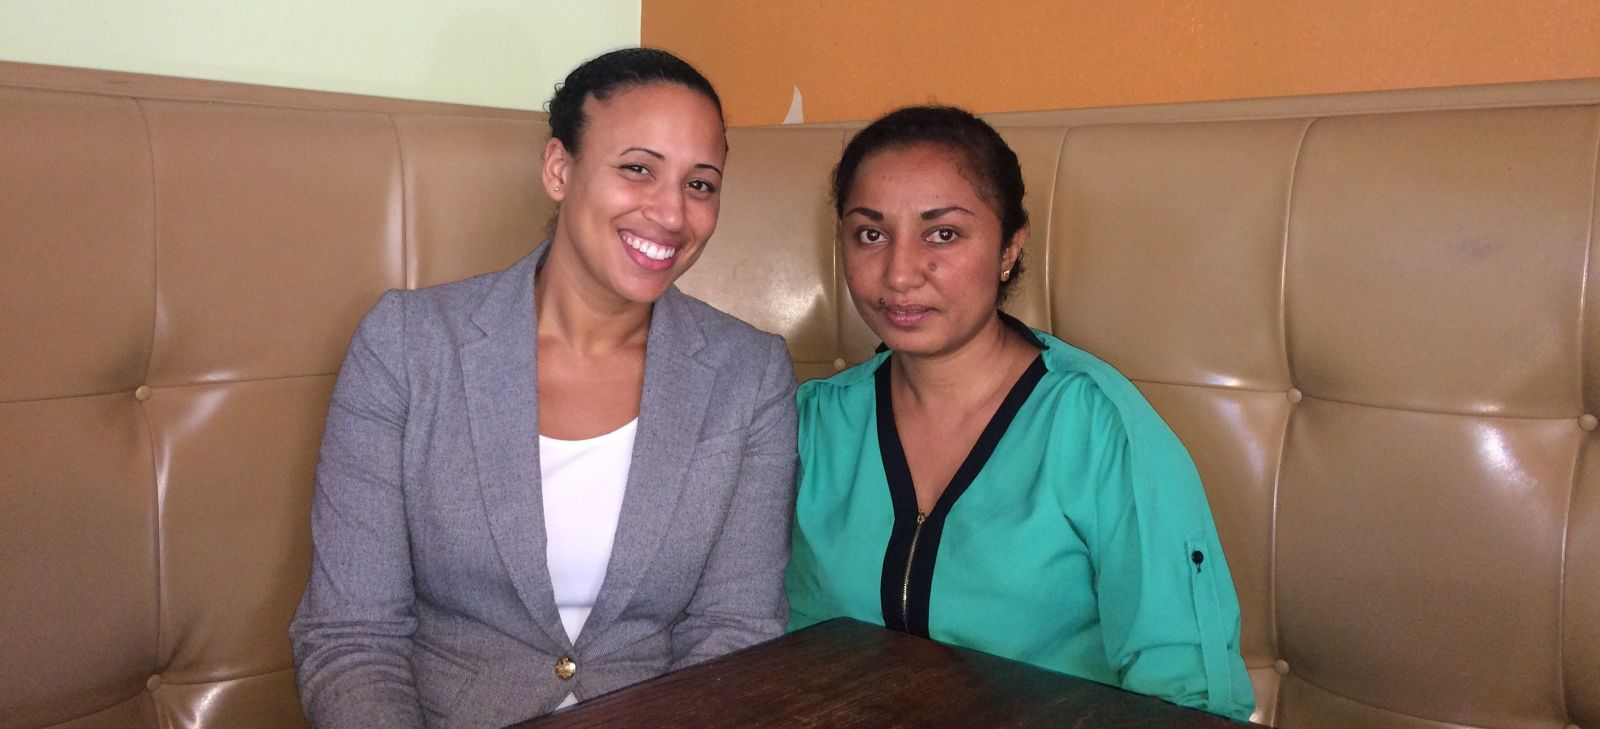 What happened next: Reeyot Alemu, Ethiopia